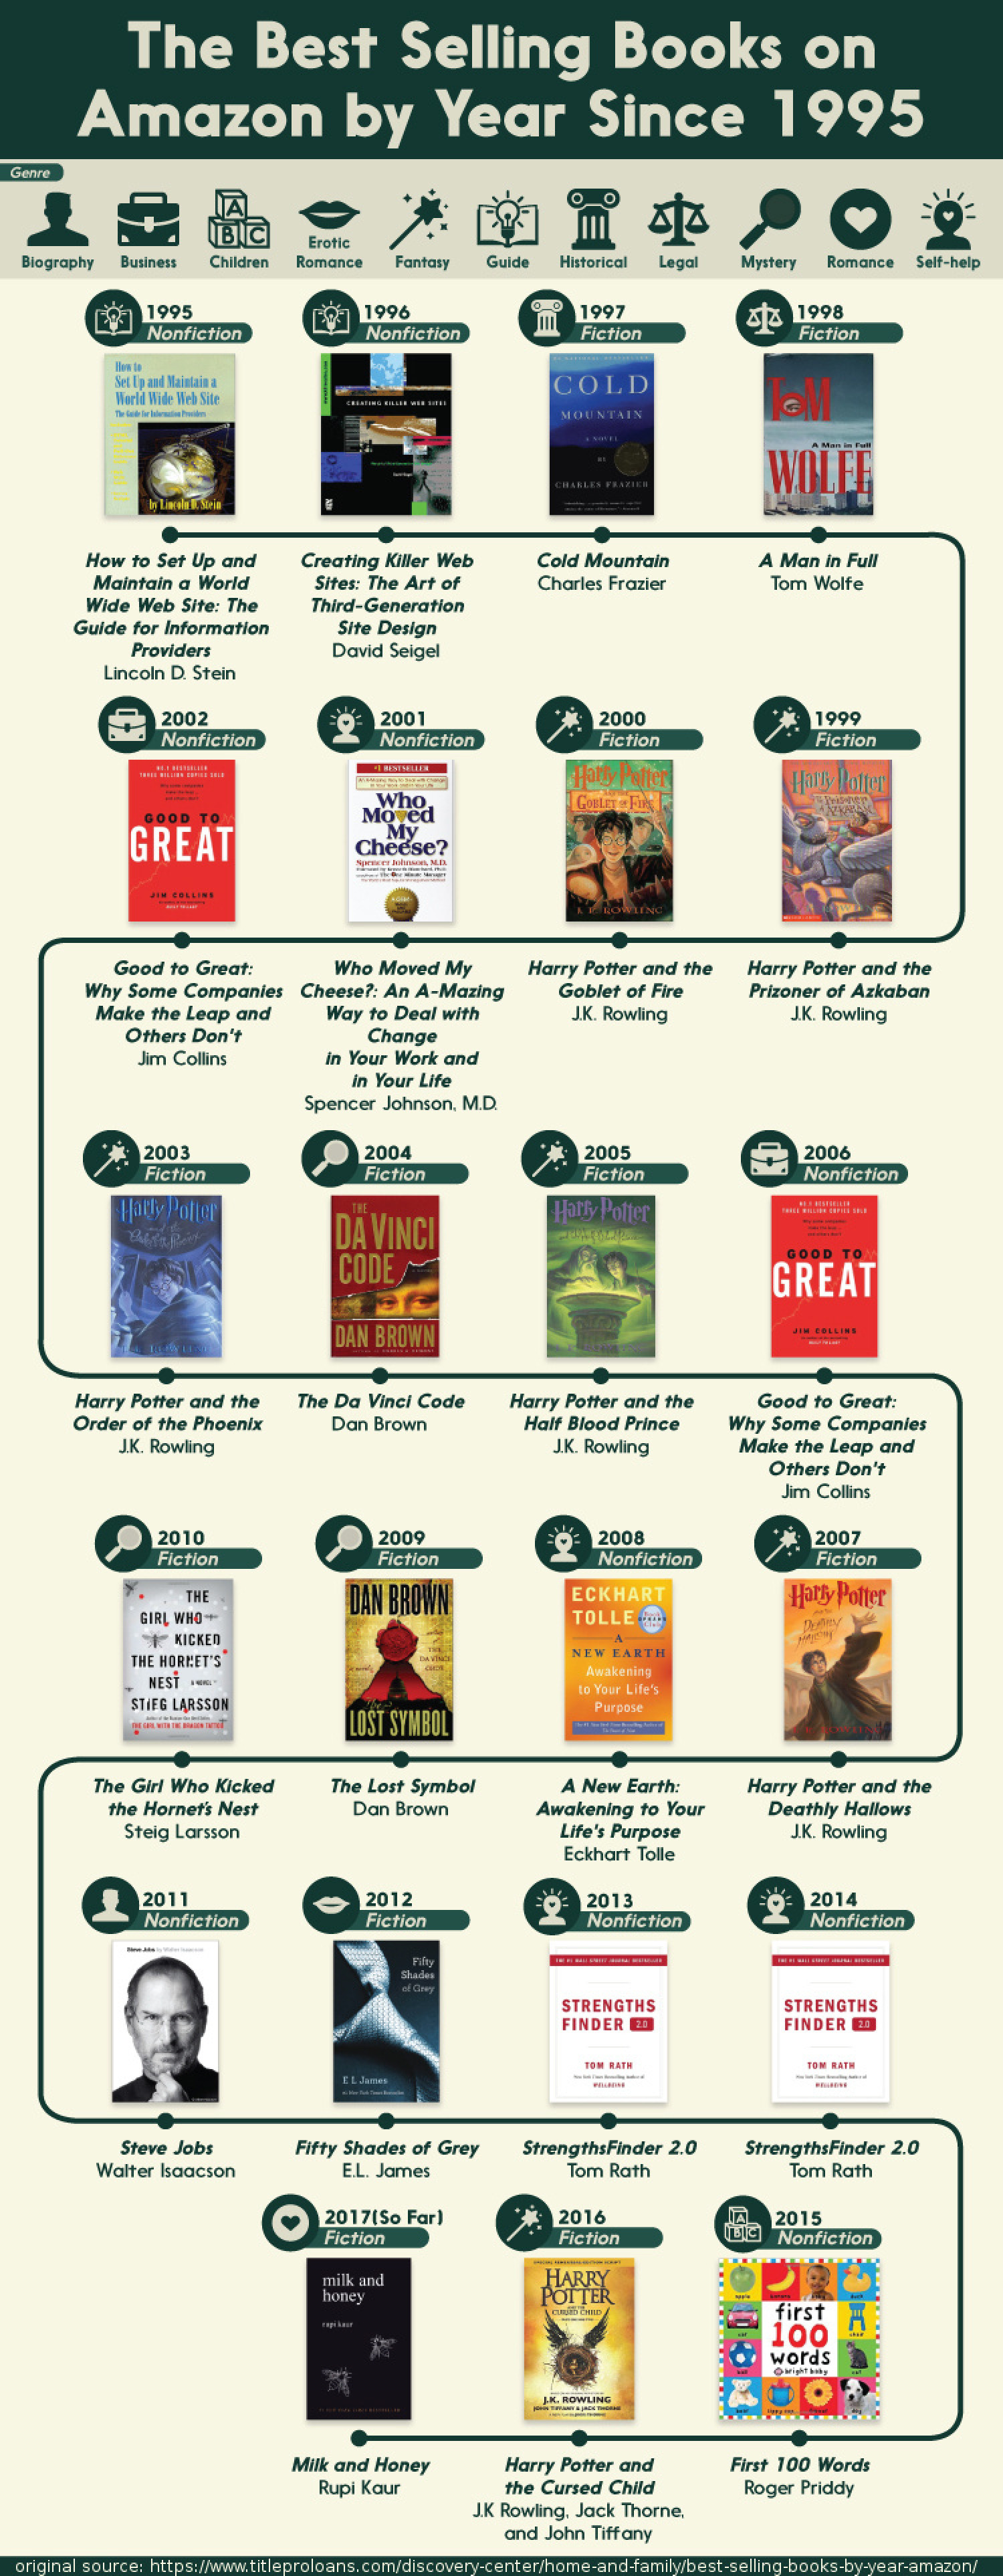 The Best Selling Books on Amazon by Year Since 1995 Infographic